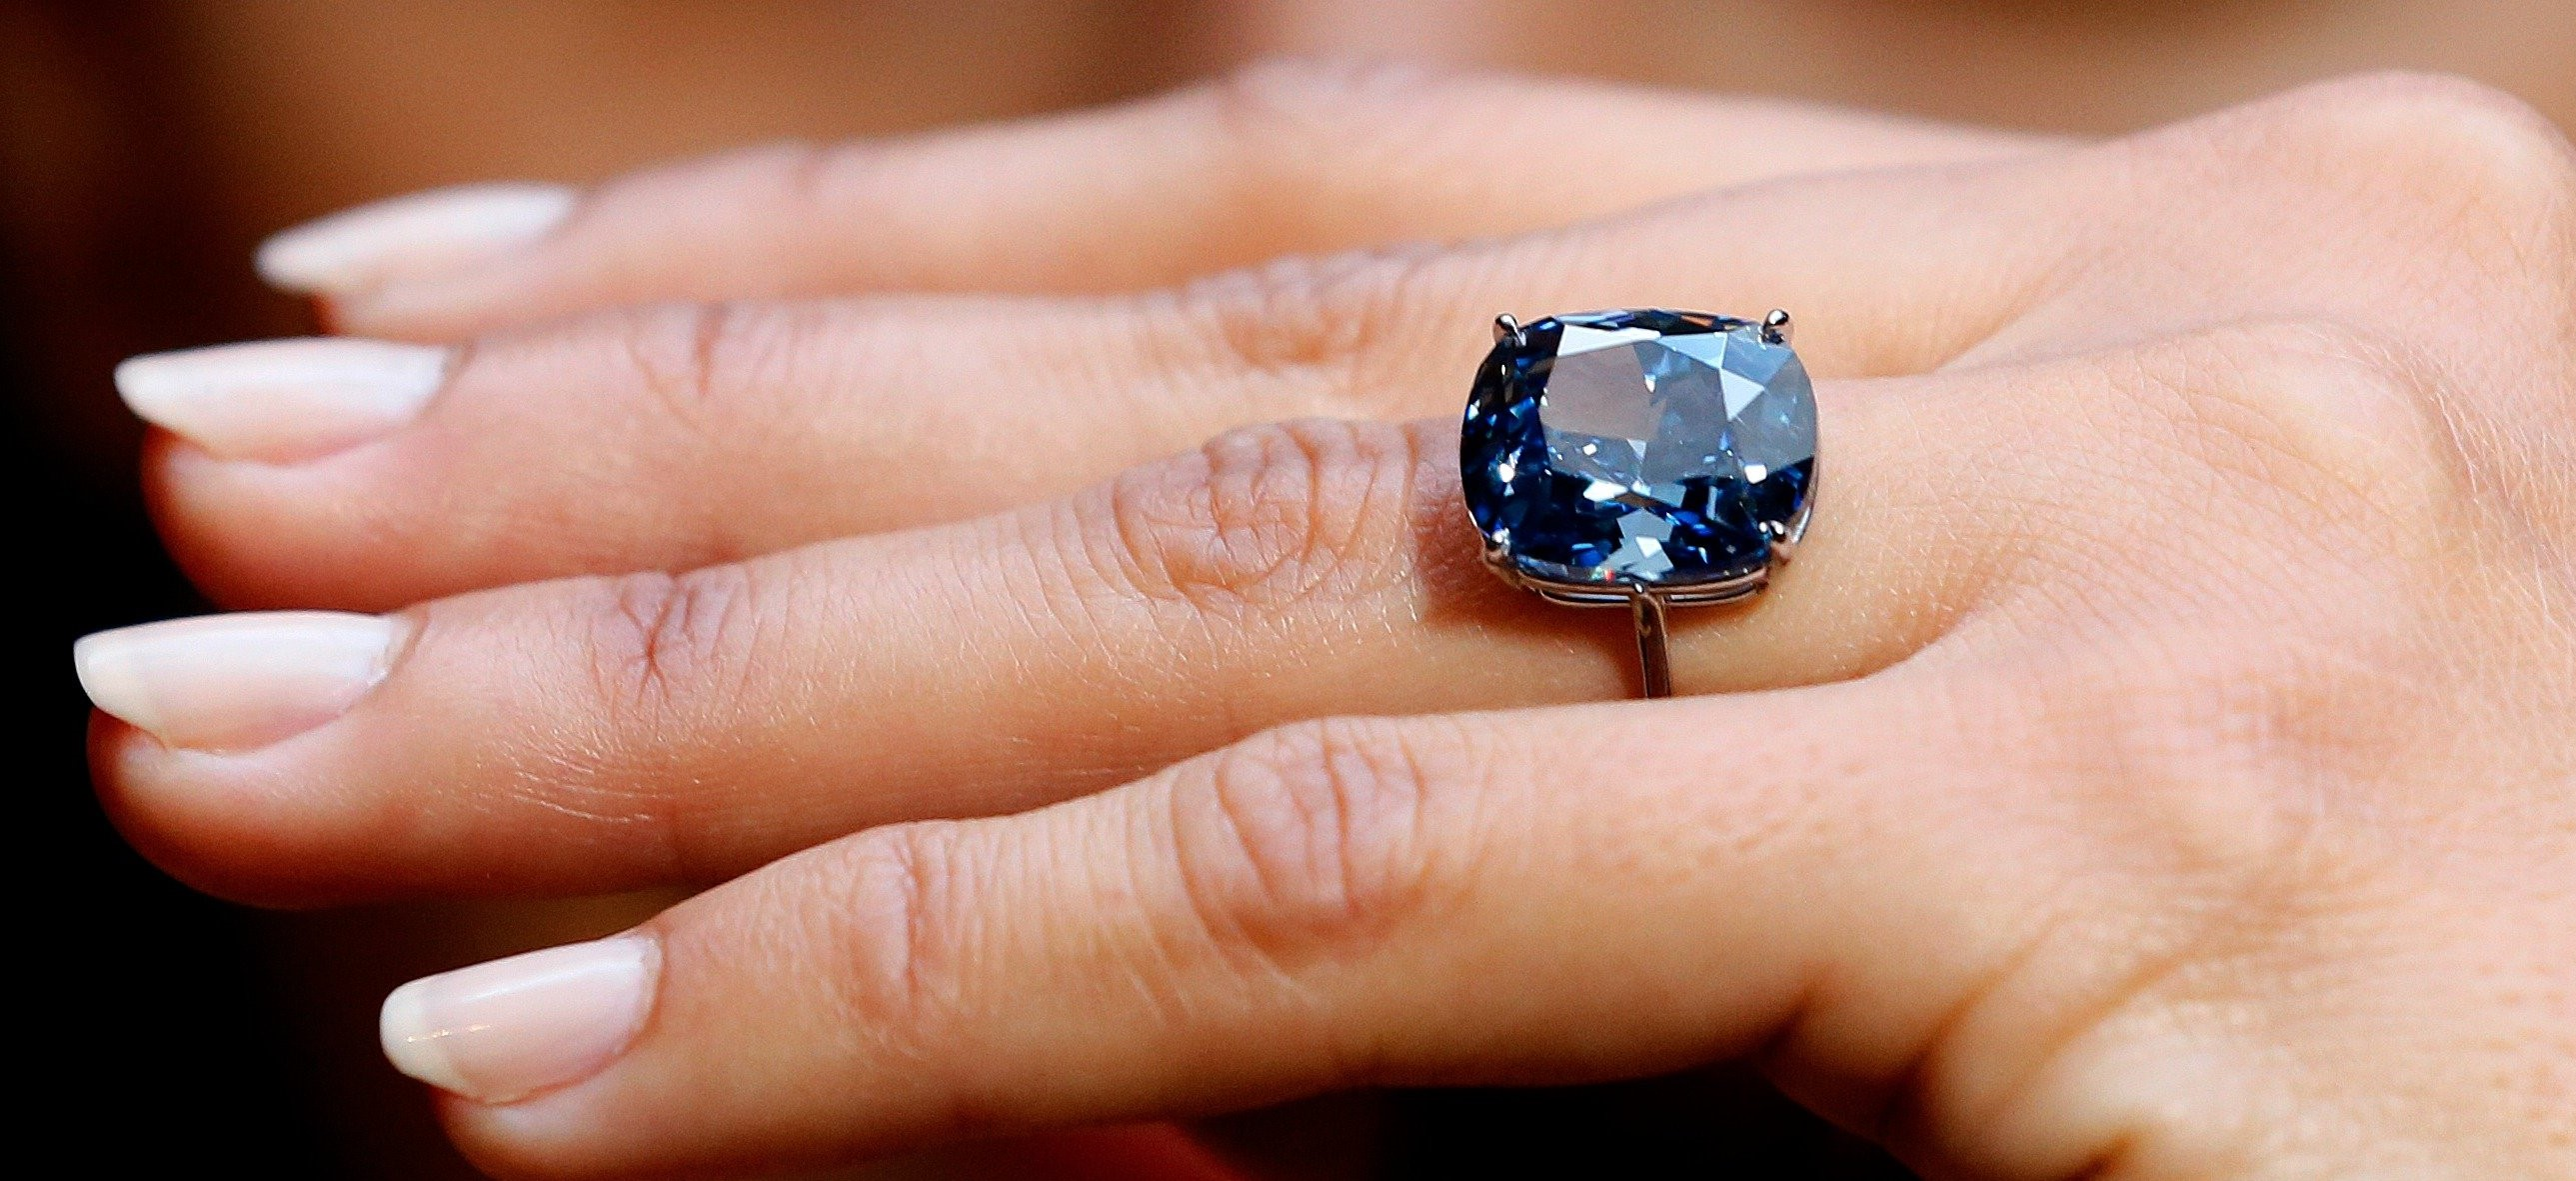 arbor sapphire brunswick products image bluestone ceylon solitaire ring